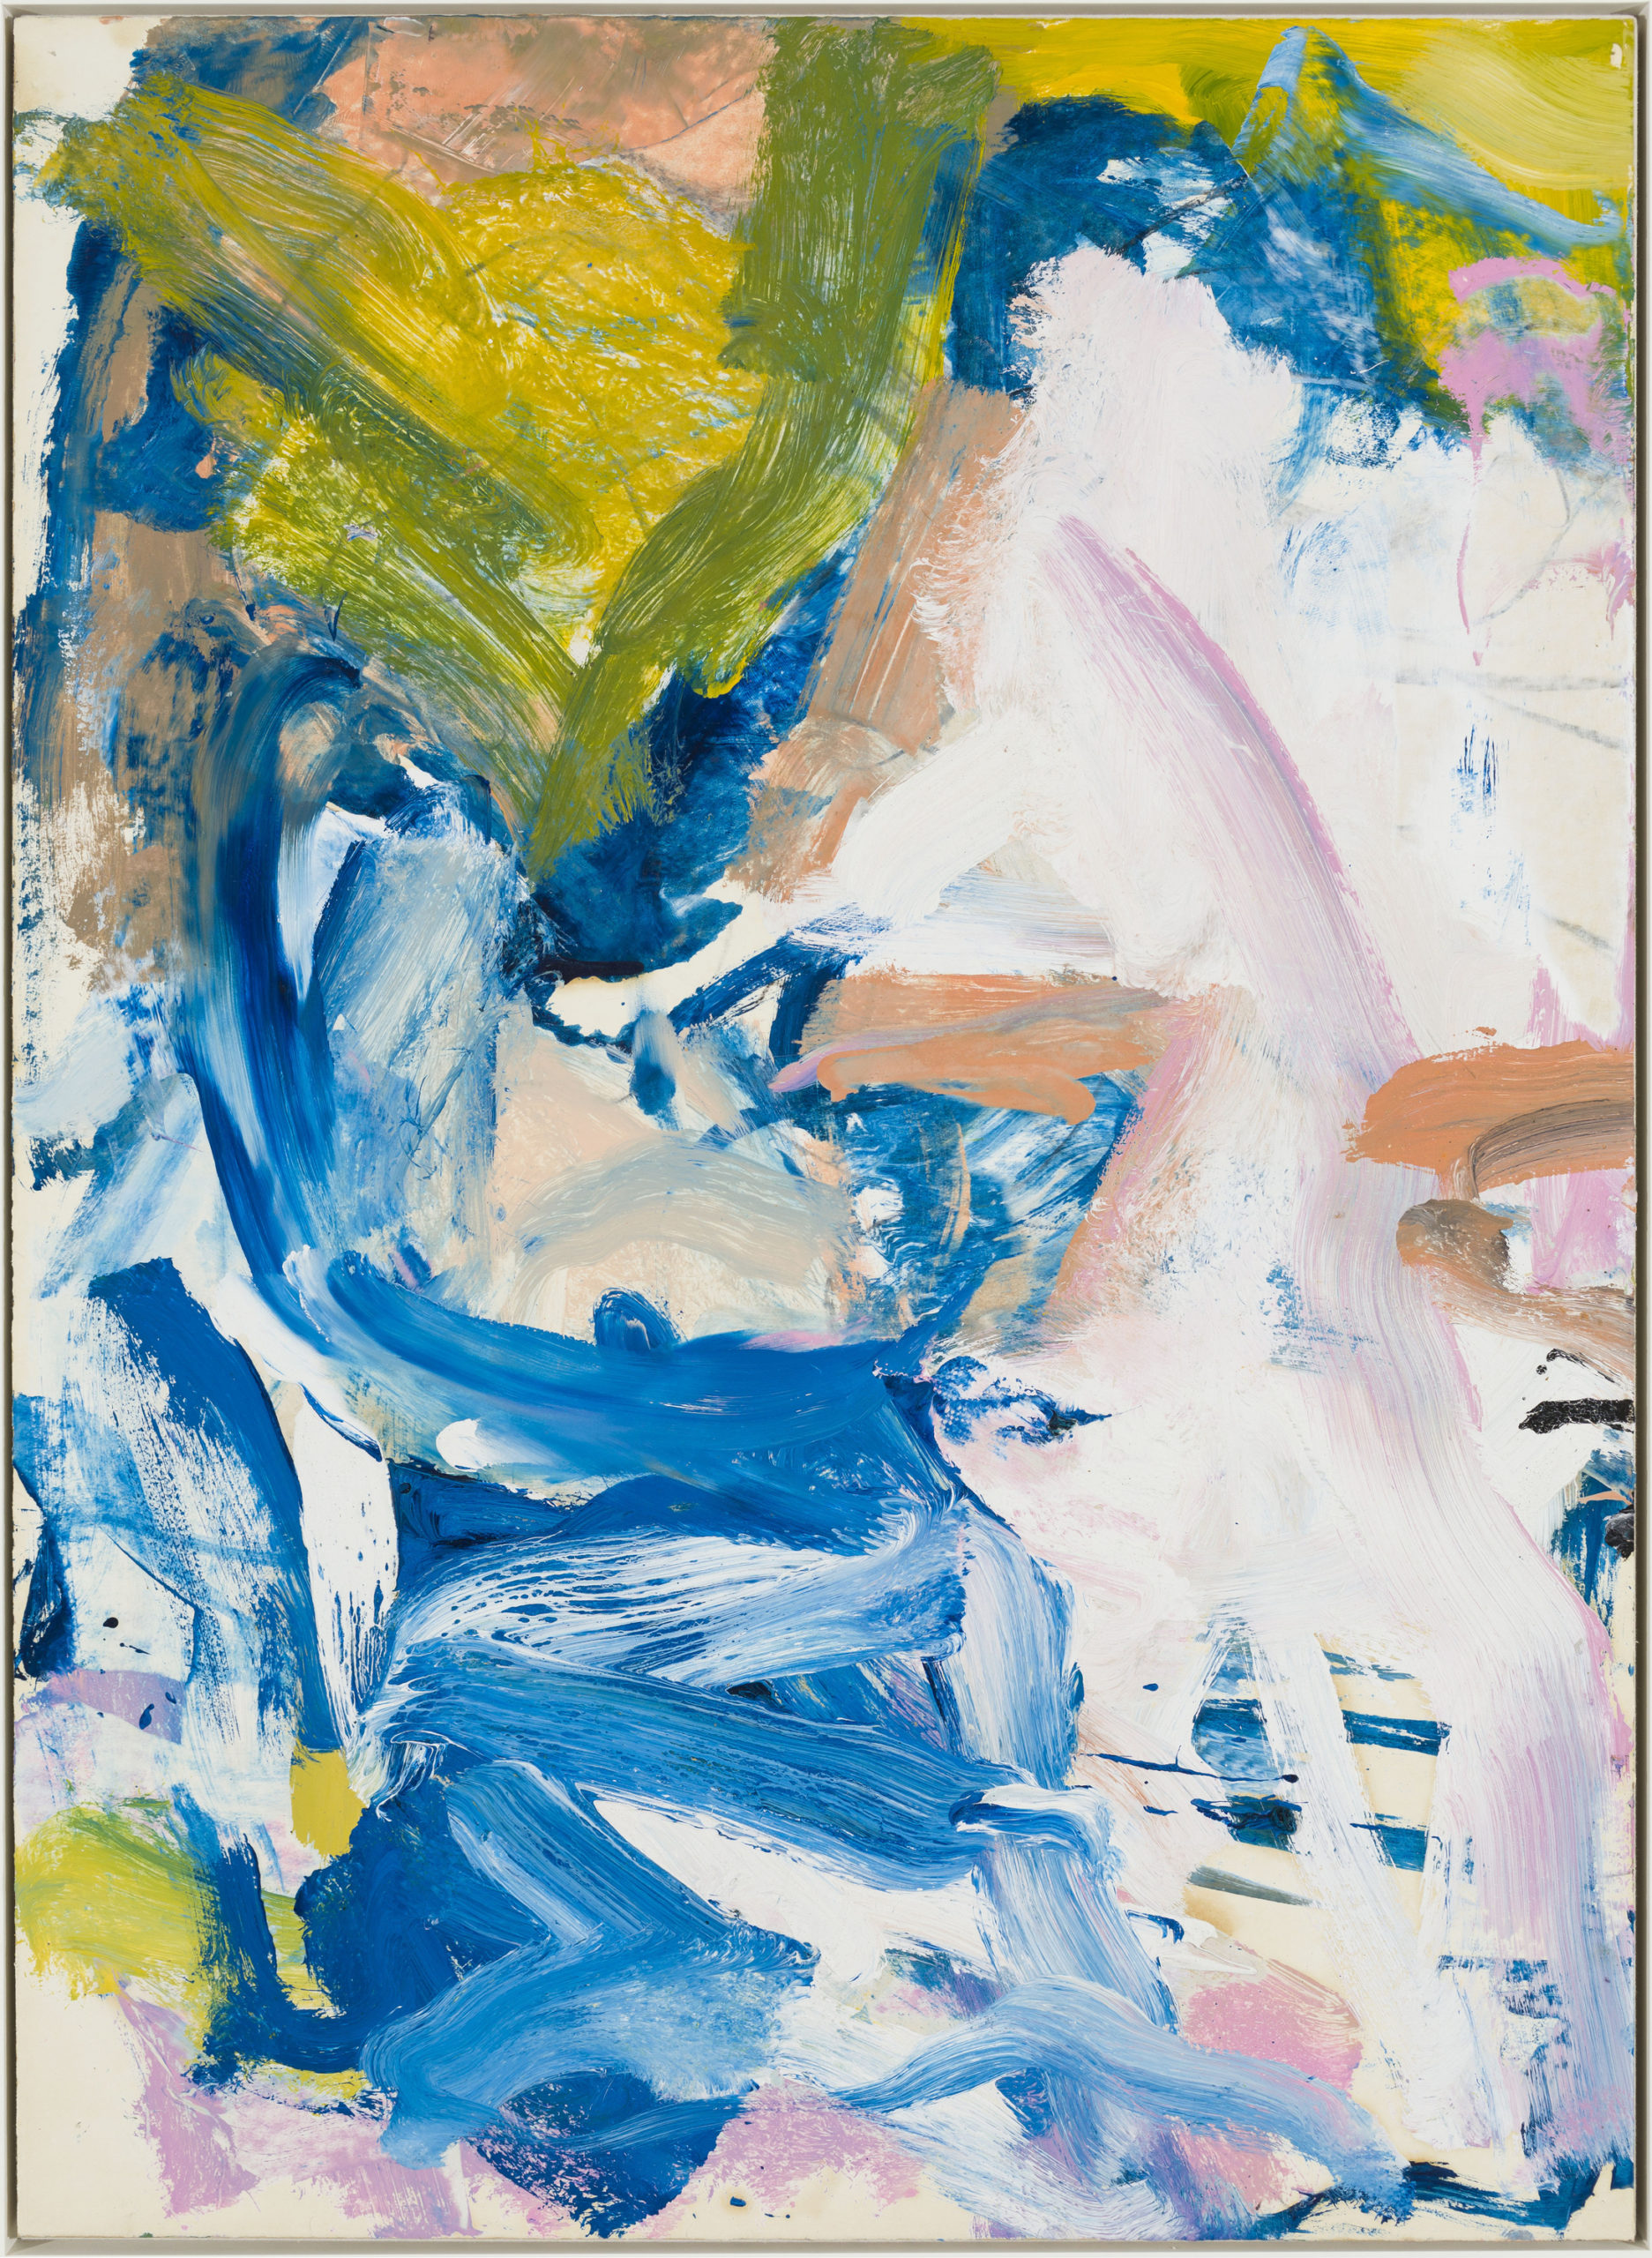 A 1977 painting by Willem de Kooning, which demonstrates an airier and more delicate approach to his work, is on view in the group exhibition,